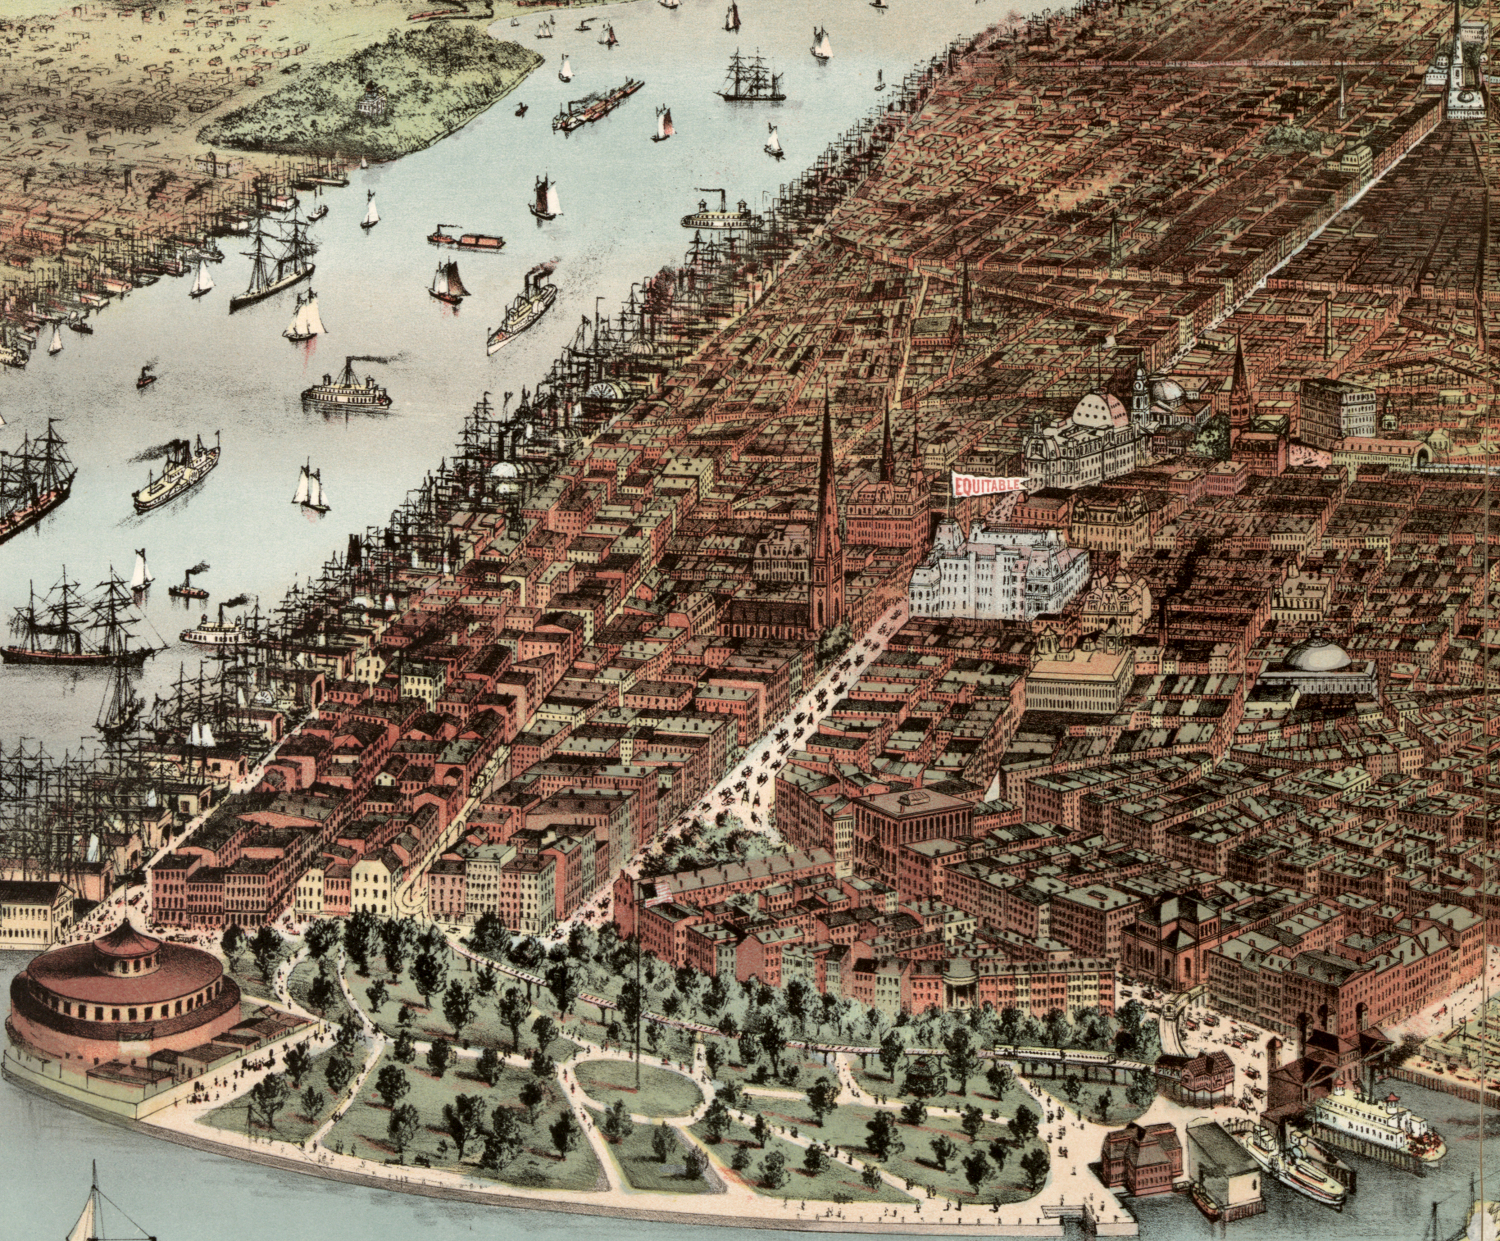 1883 battery detail of City of New York